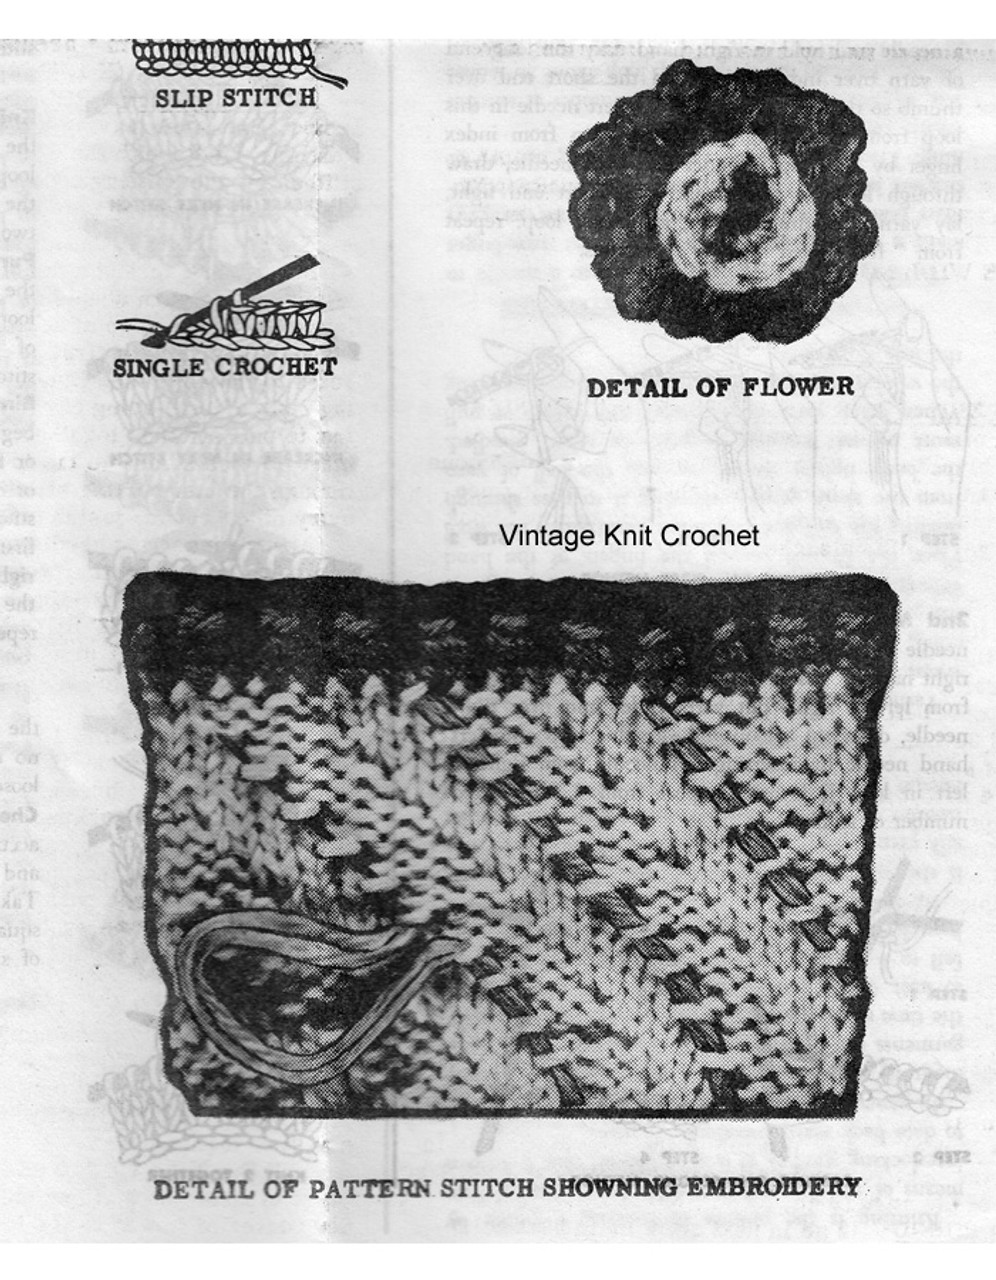 Knitted Slippers Pattern Stitch Illustration, Alice Brooks 7391